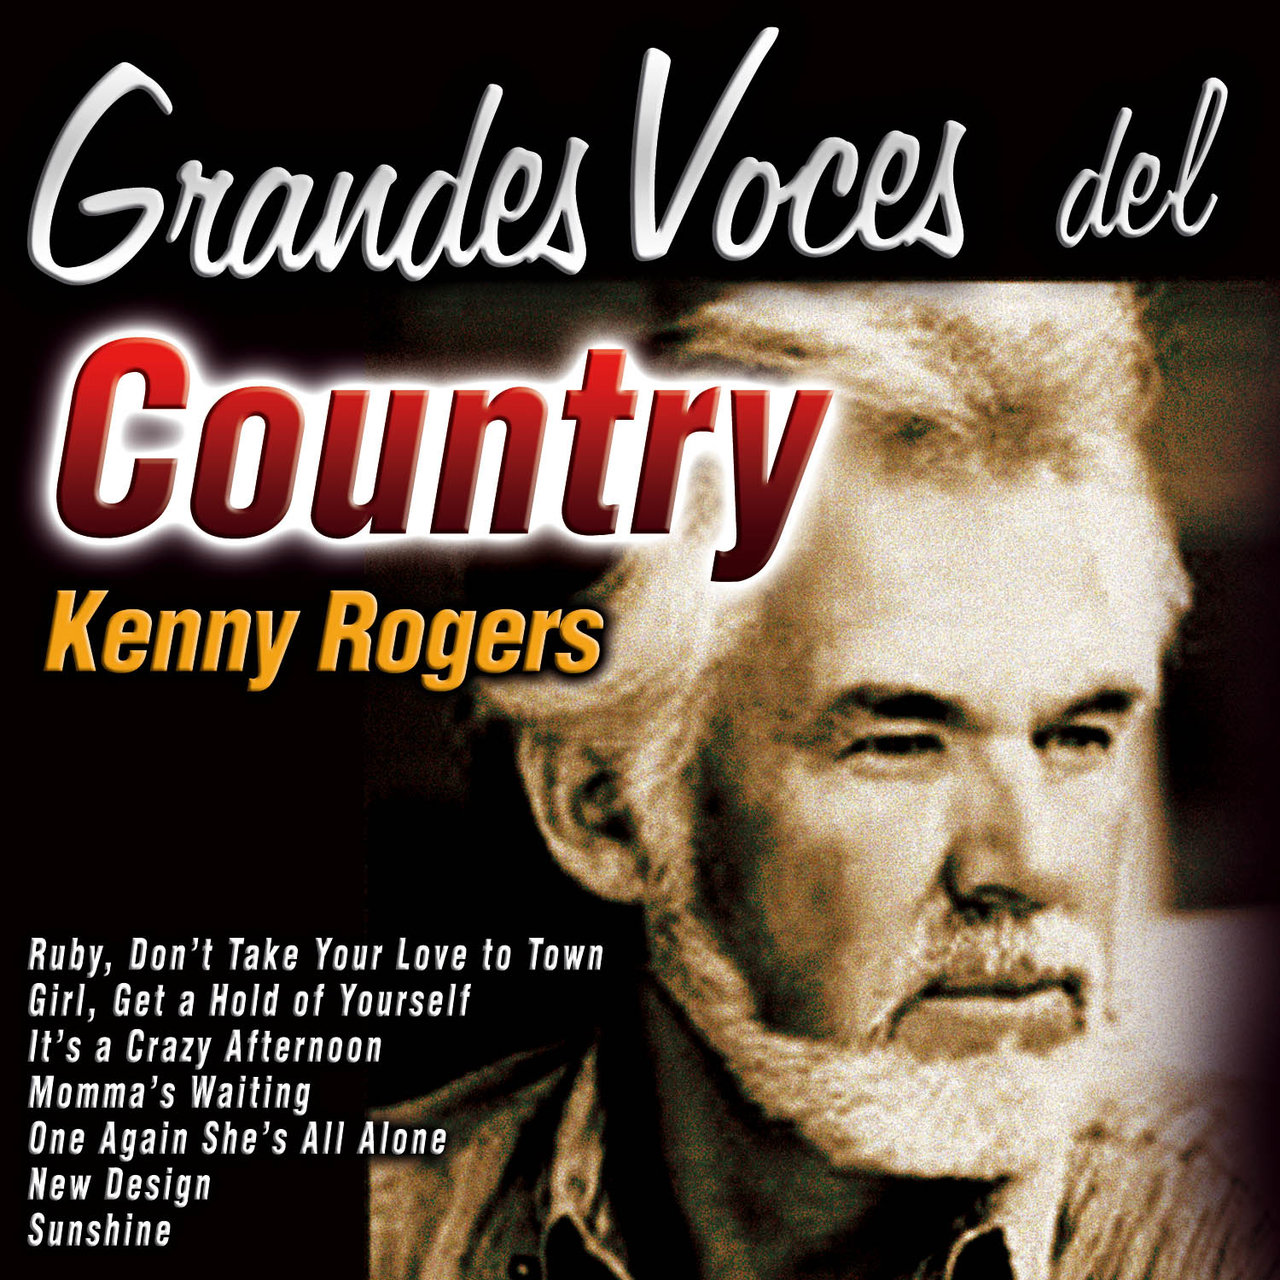 TIDAL: Listen to Grandes Voces del Country: Kenny Rogers on TIDAL